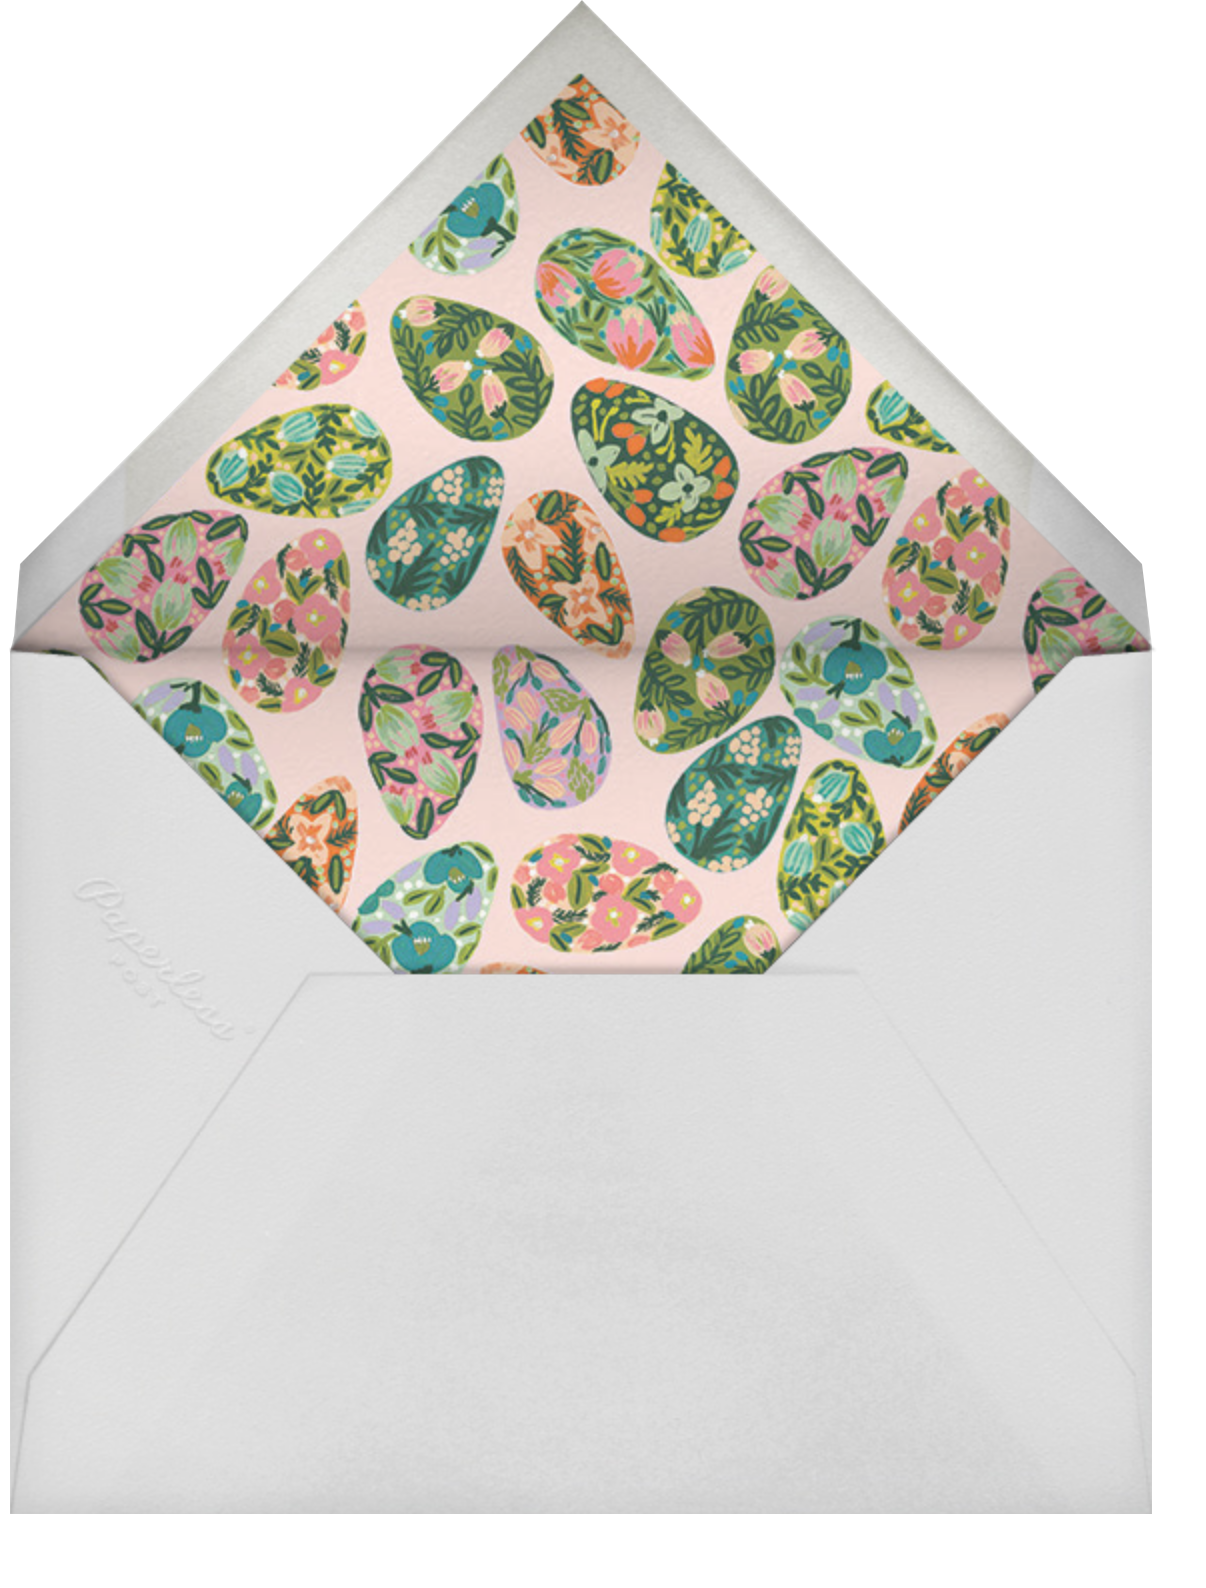 The Grass Menagerie - Rifle Paper Co. - Envelope